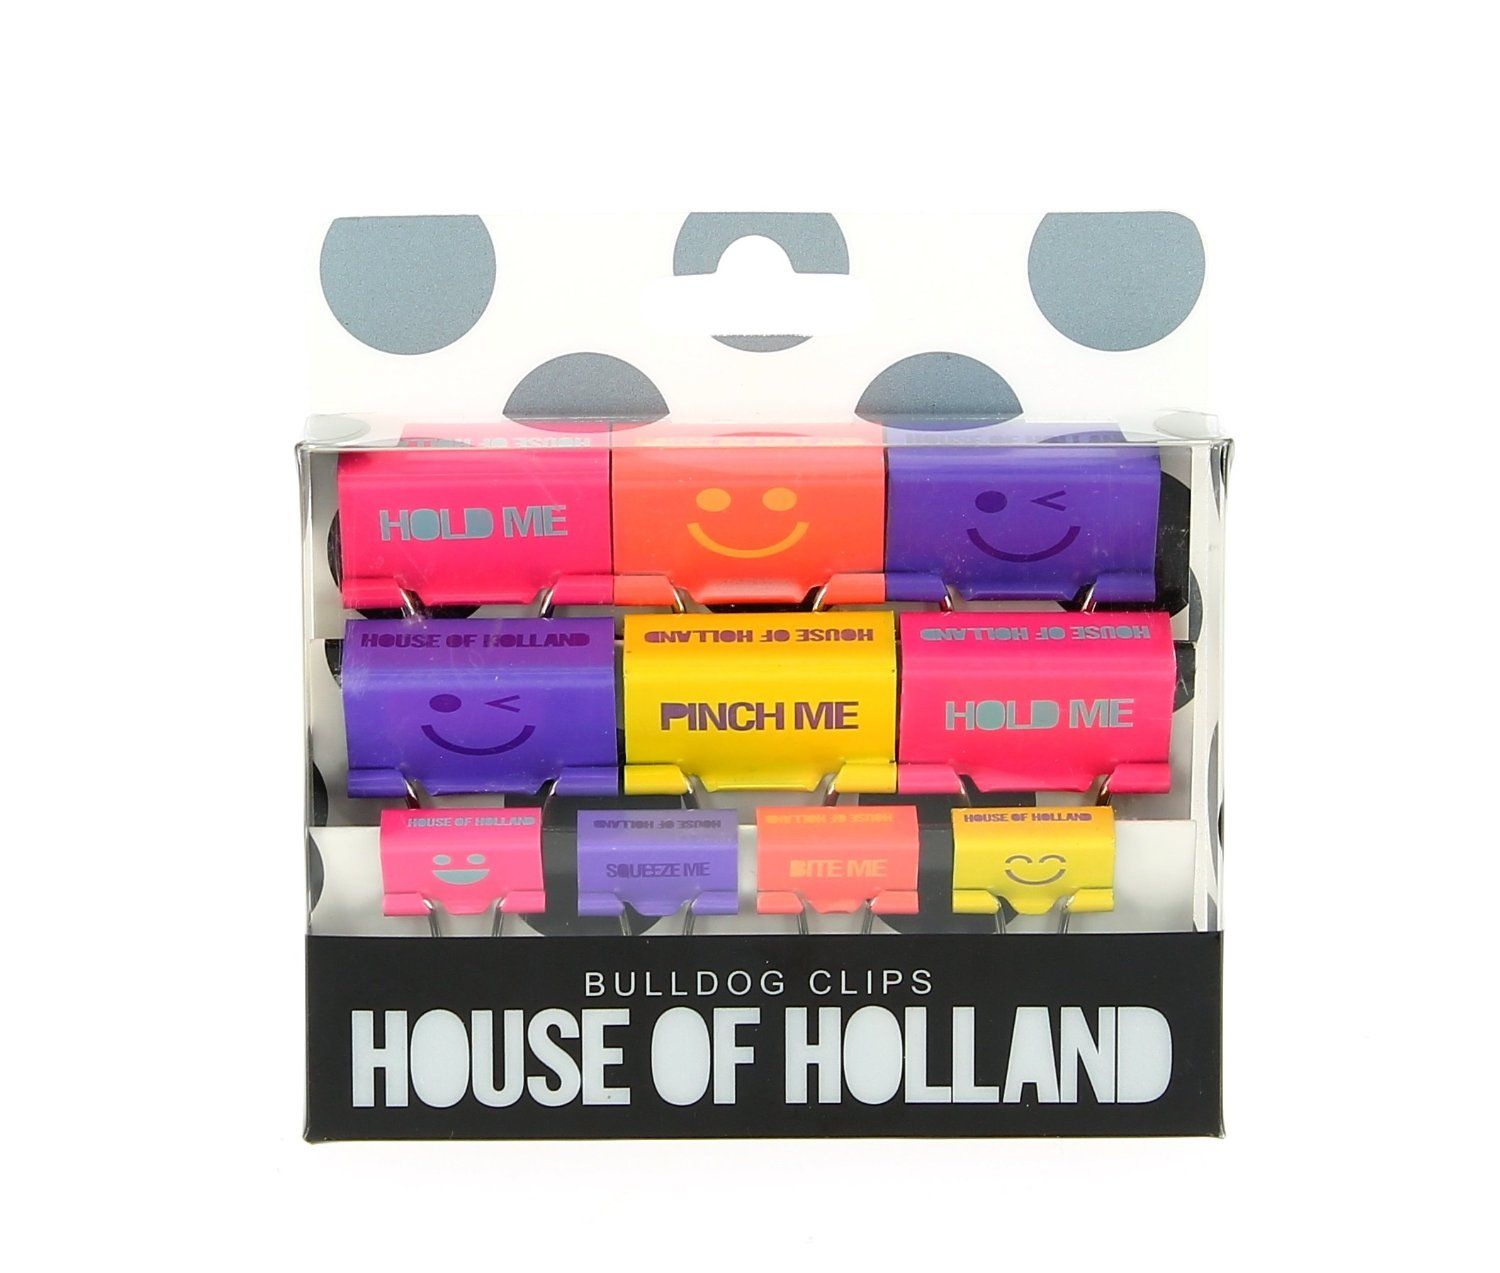 house of holland bulldog clips: amazon.co.uk: office products